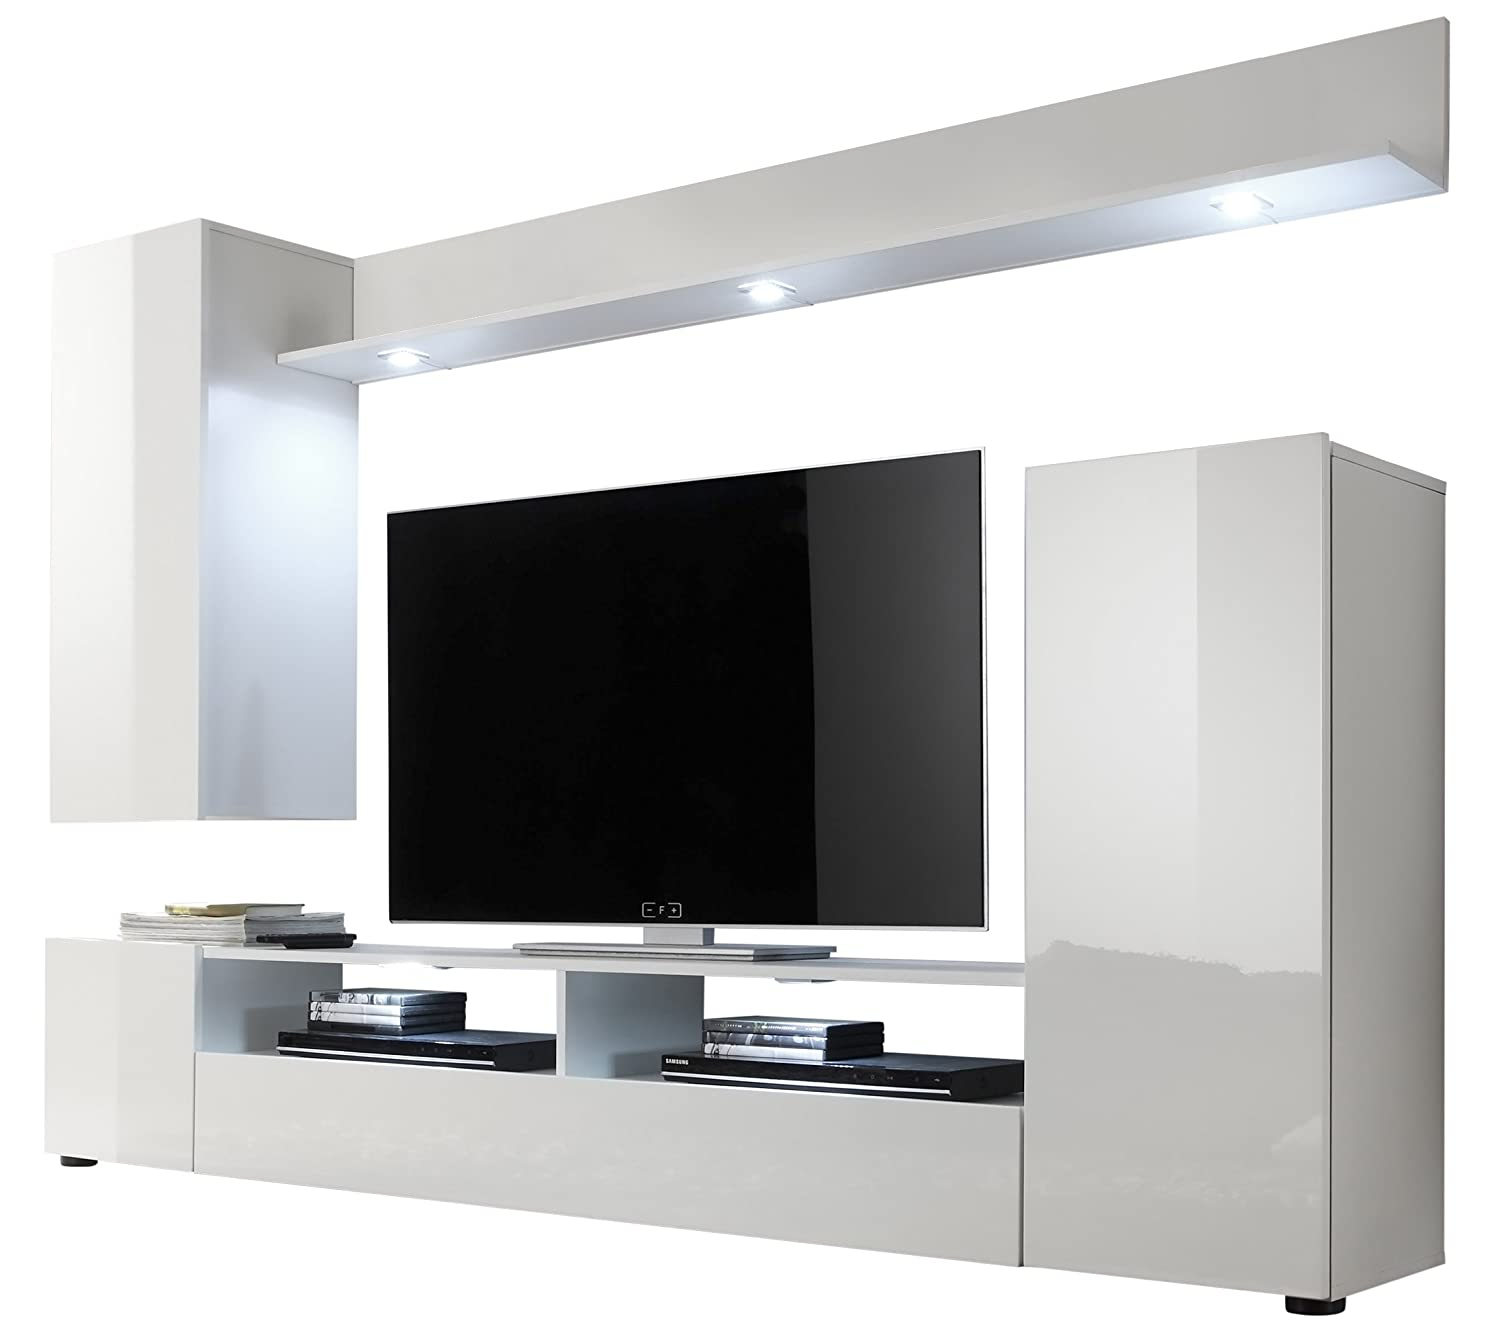 Charming Furnline Dos High Gloss TV Stand Wall Unit Living Room Furniture Set, White Part 12